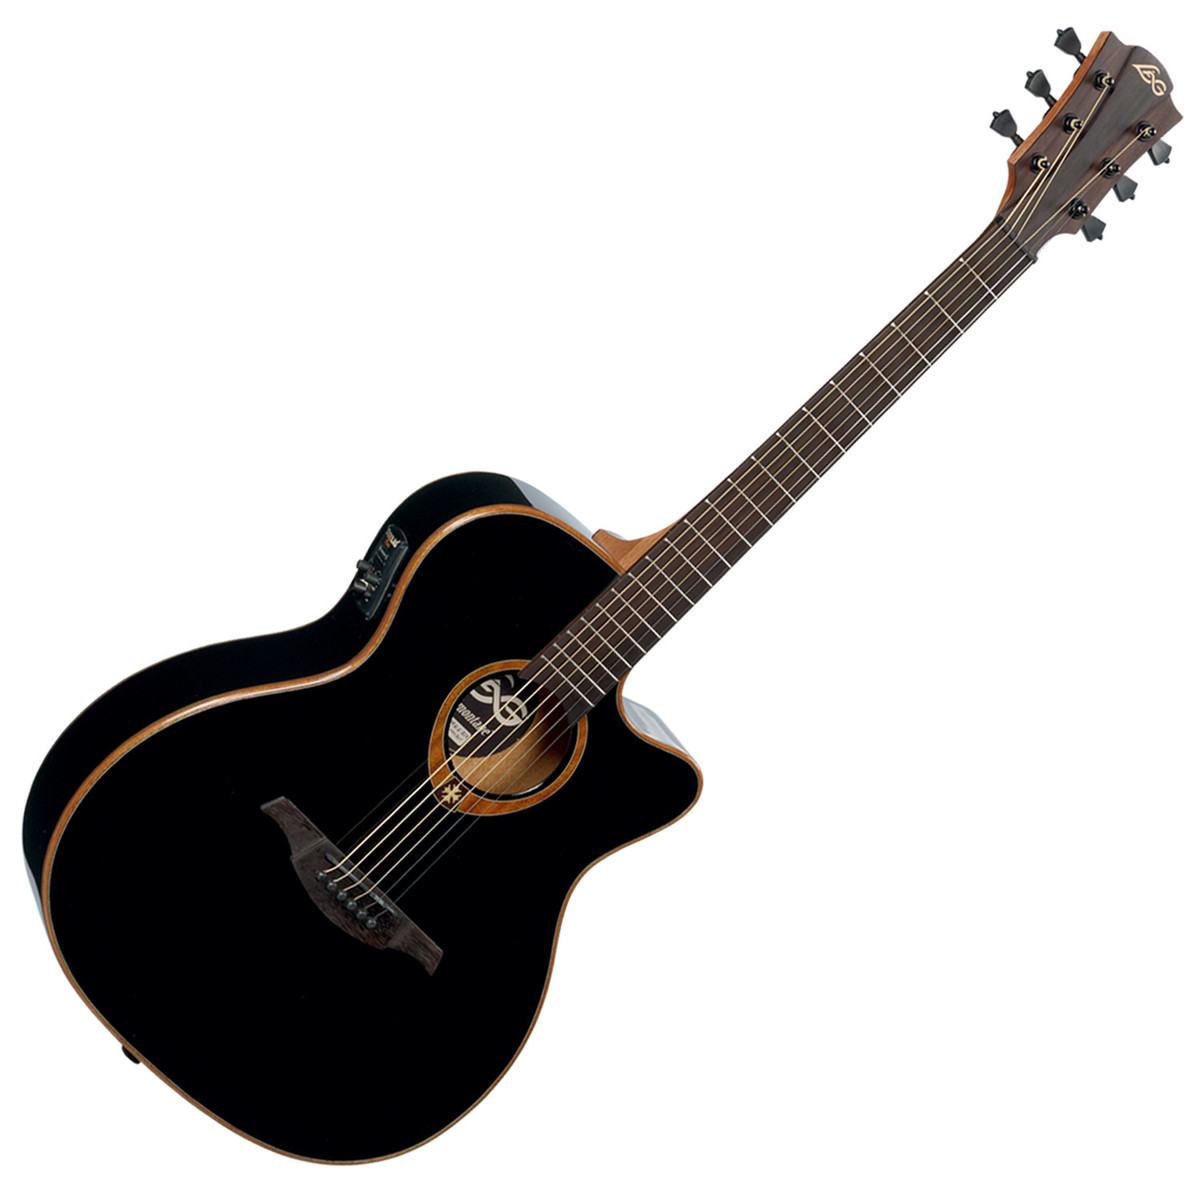 lag tramontane t100ace guitare lectro acoustique noir. Black Bedroom Furniture Sets. Home Design Ideas